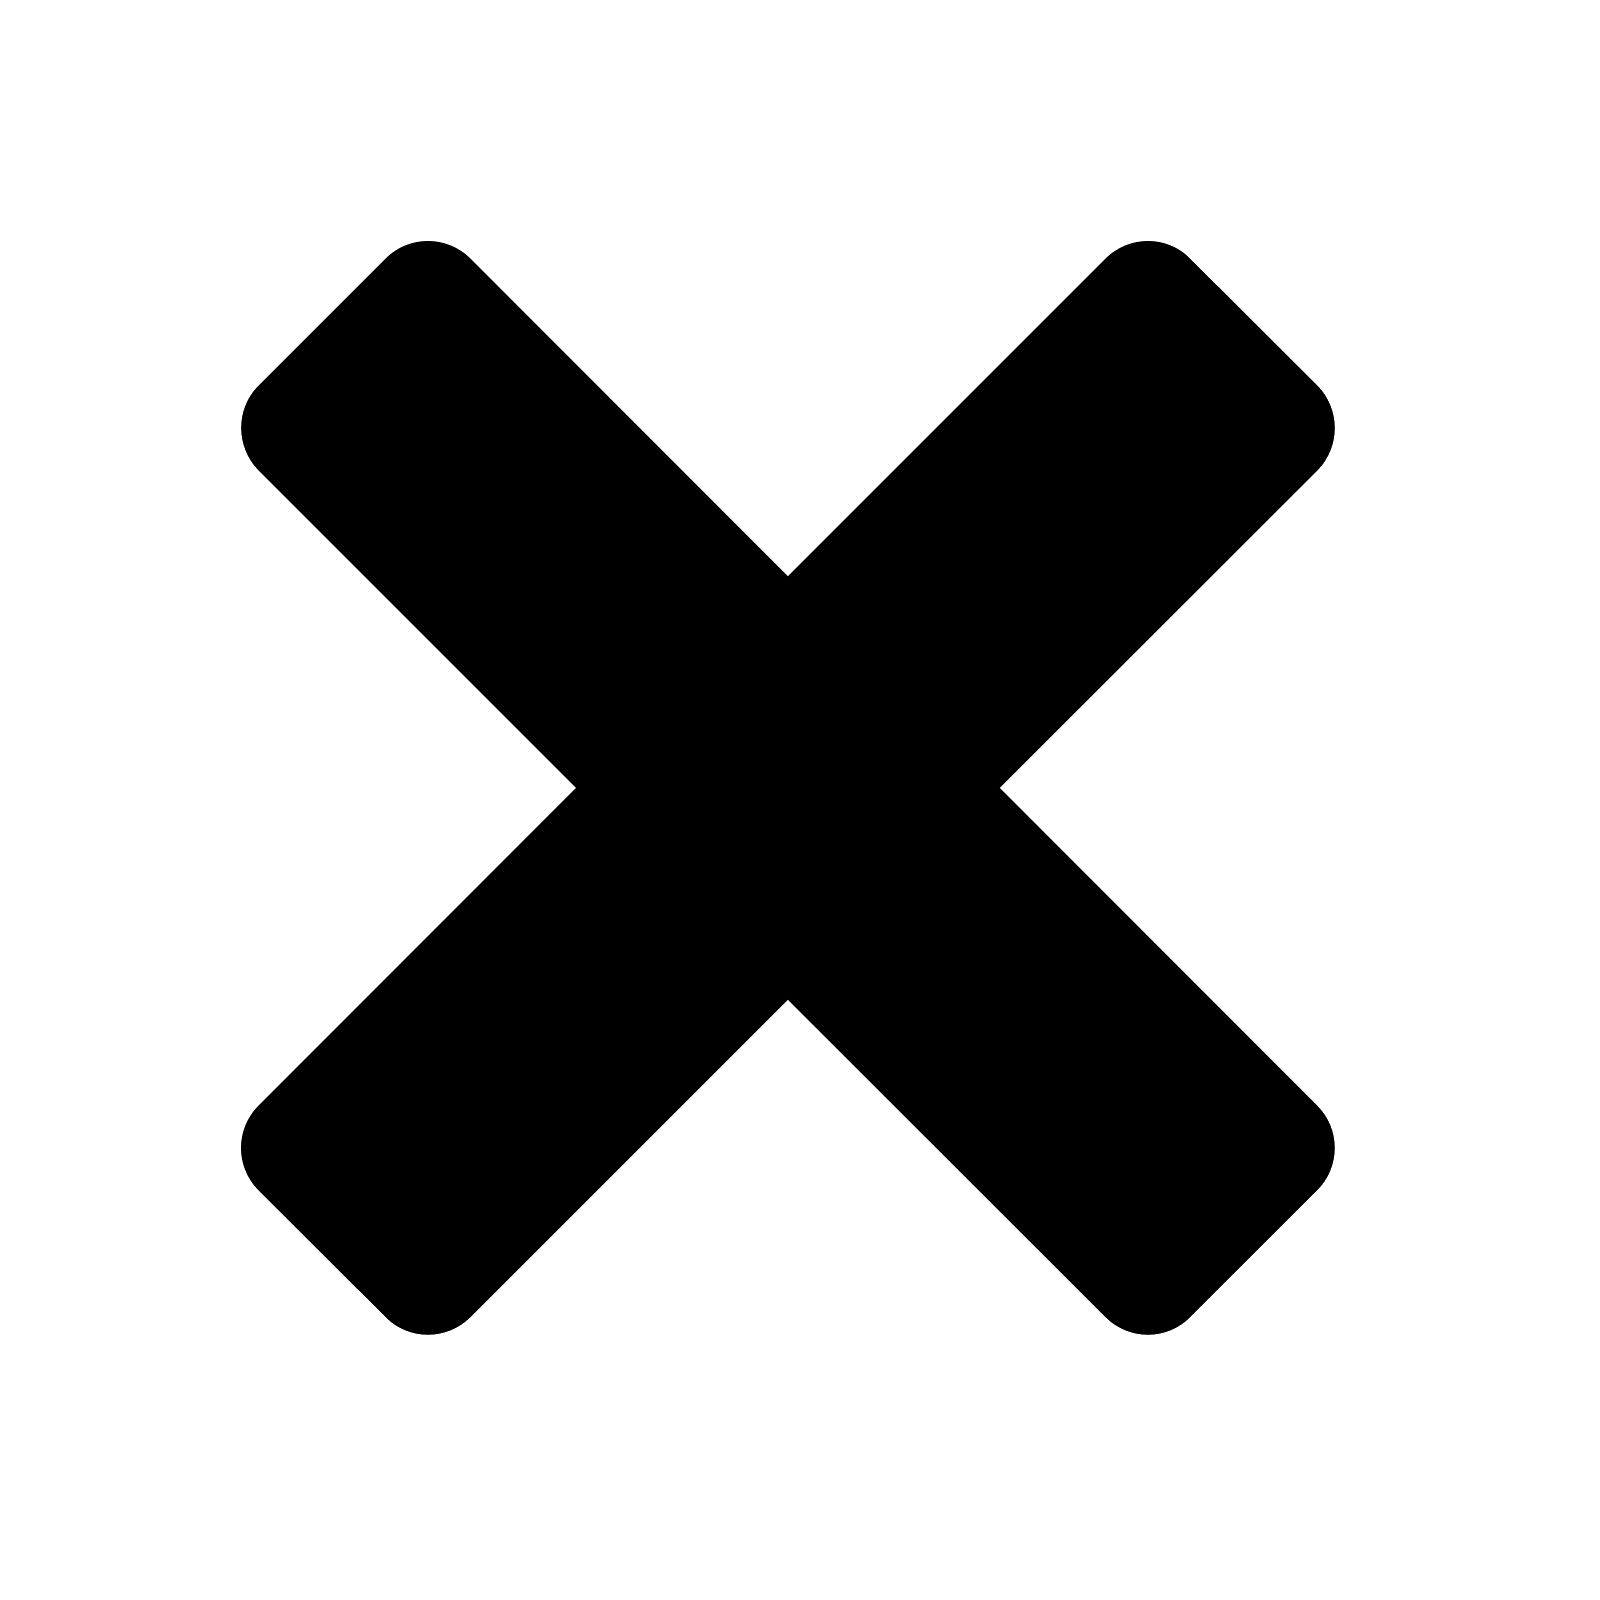 X Png Icon #99316.